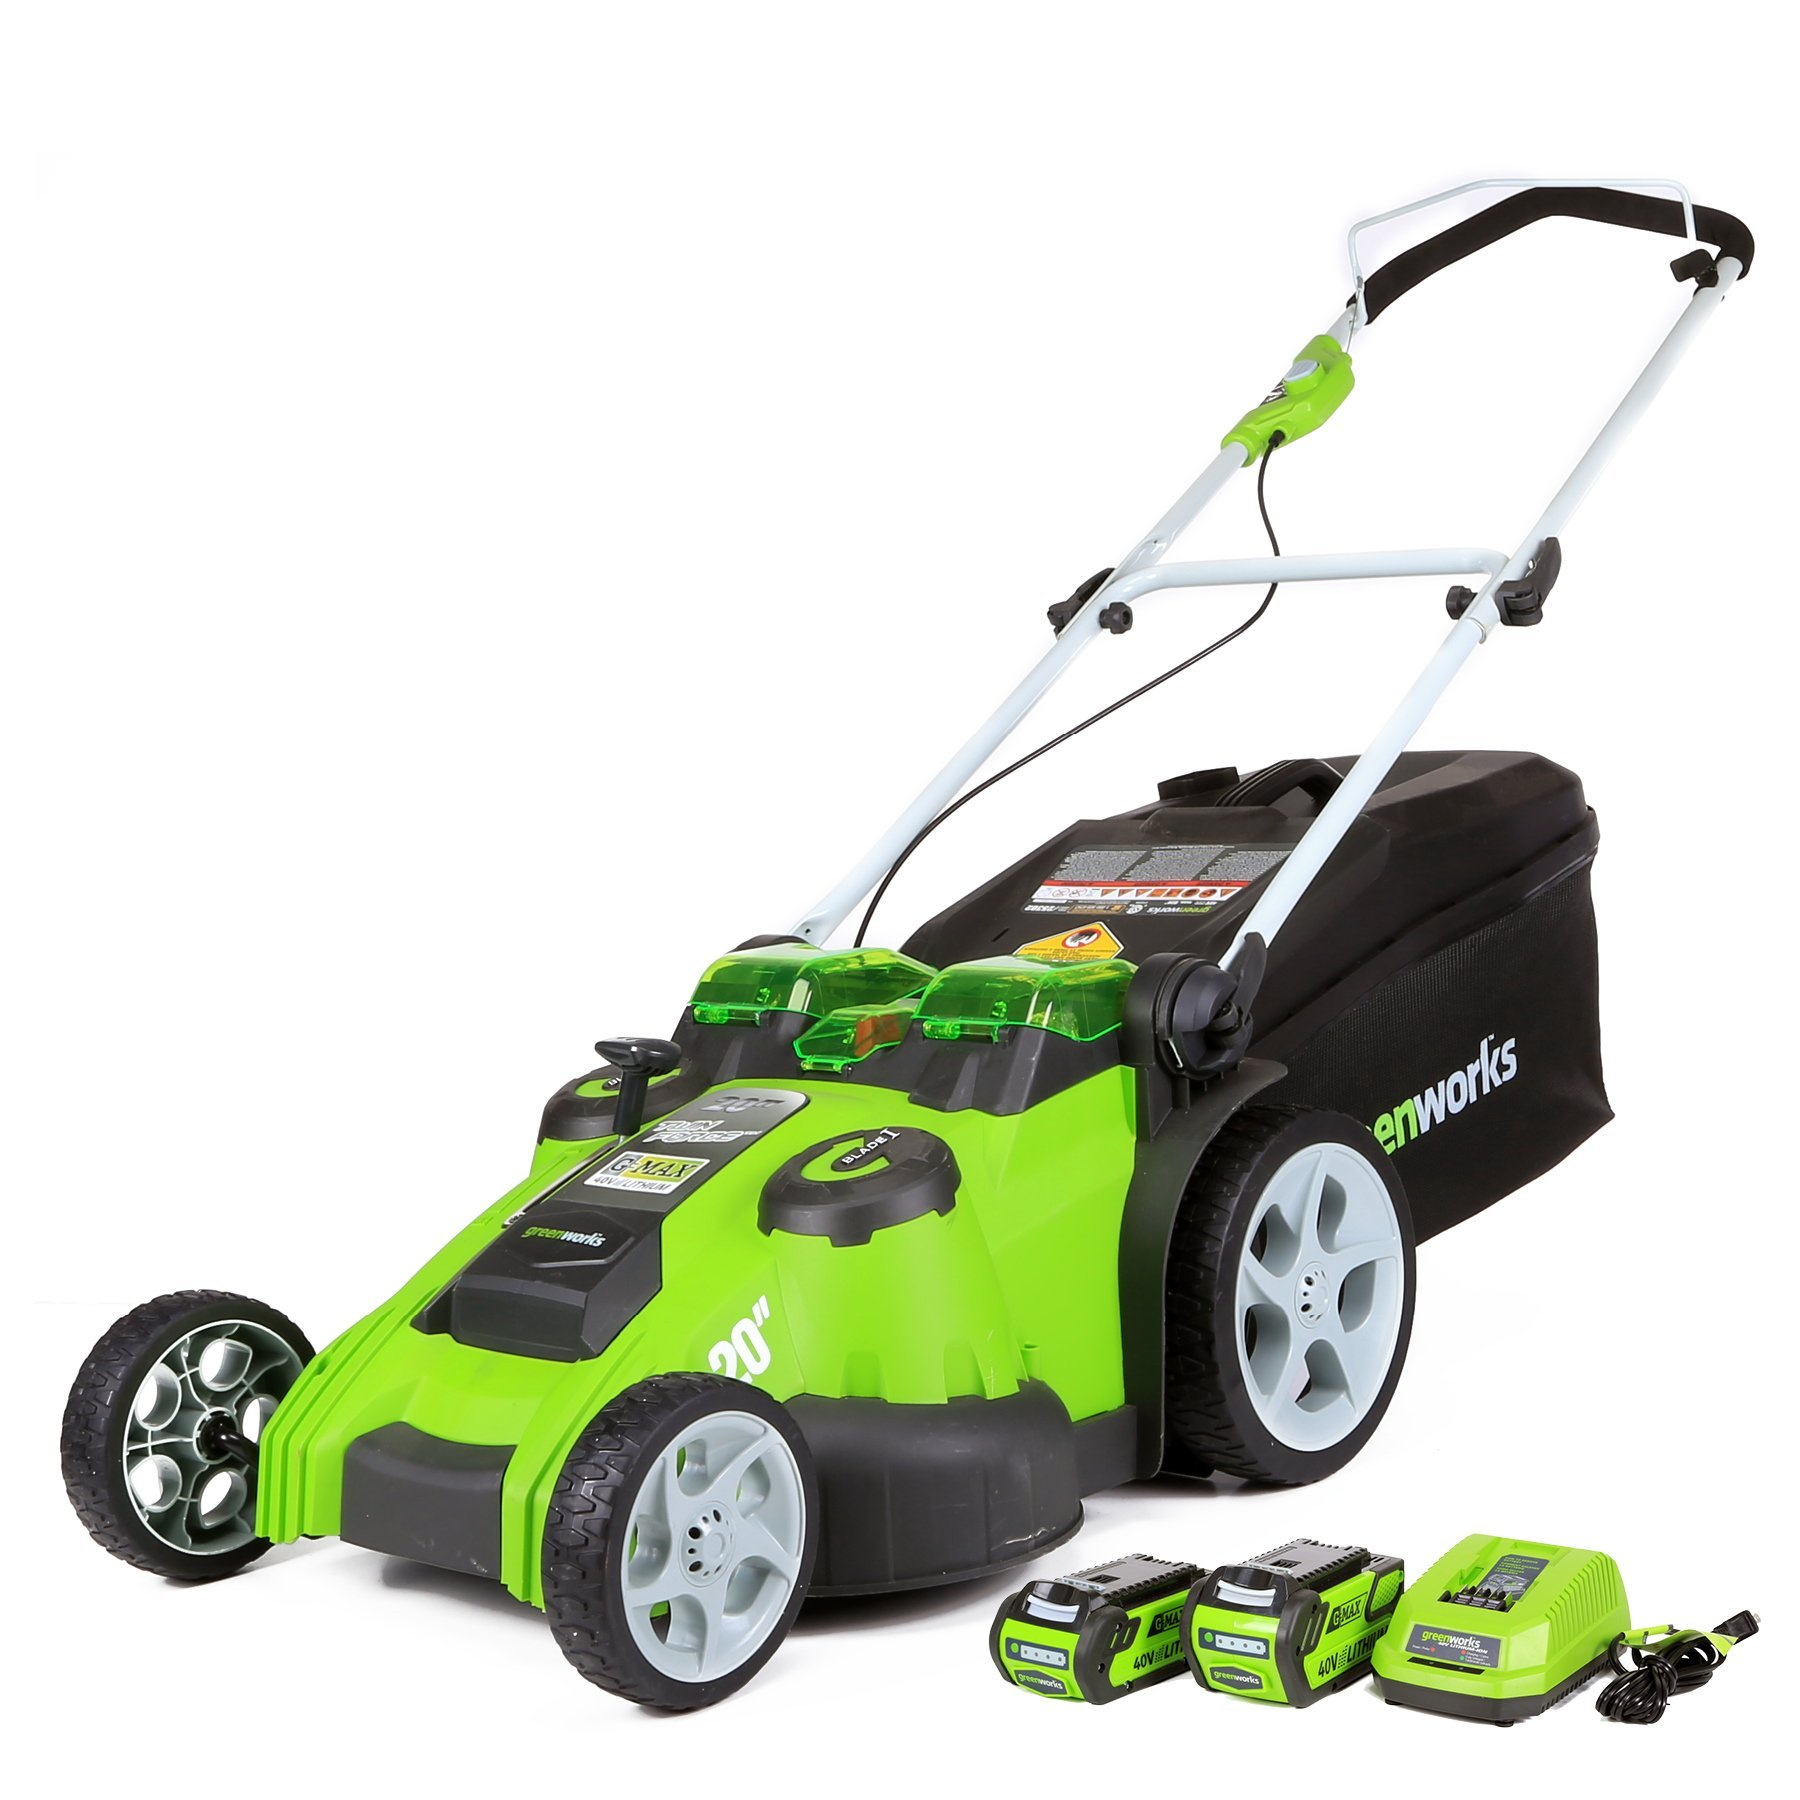 Greenworks 20-Inch 40V Twin Force Cordless Lawn Mower, 4.0 AH & 2.0 AH Batteries Included 25302 by Greenworks (Image #1)